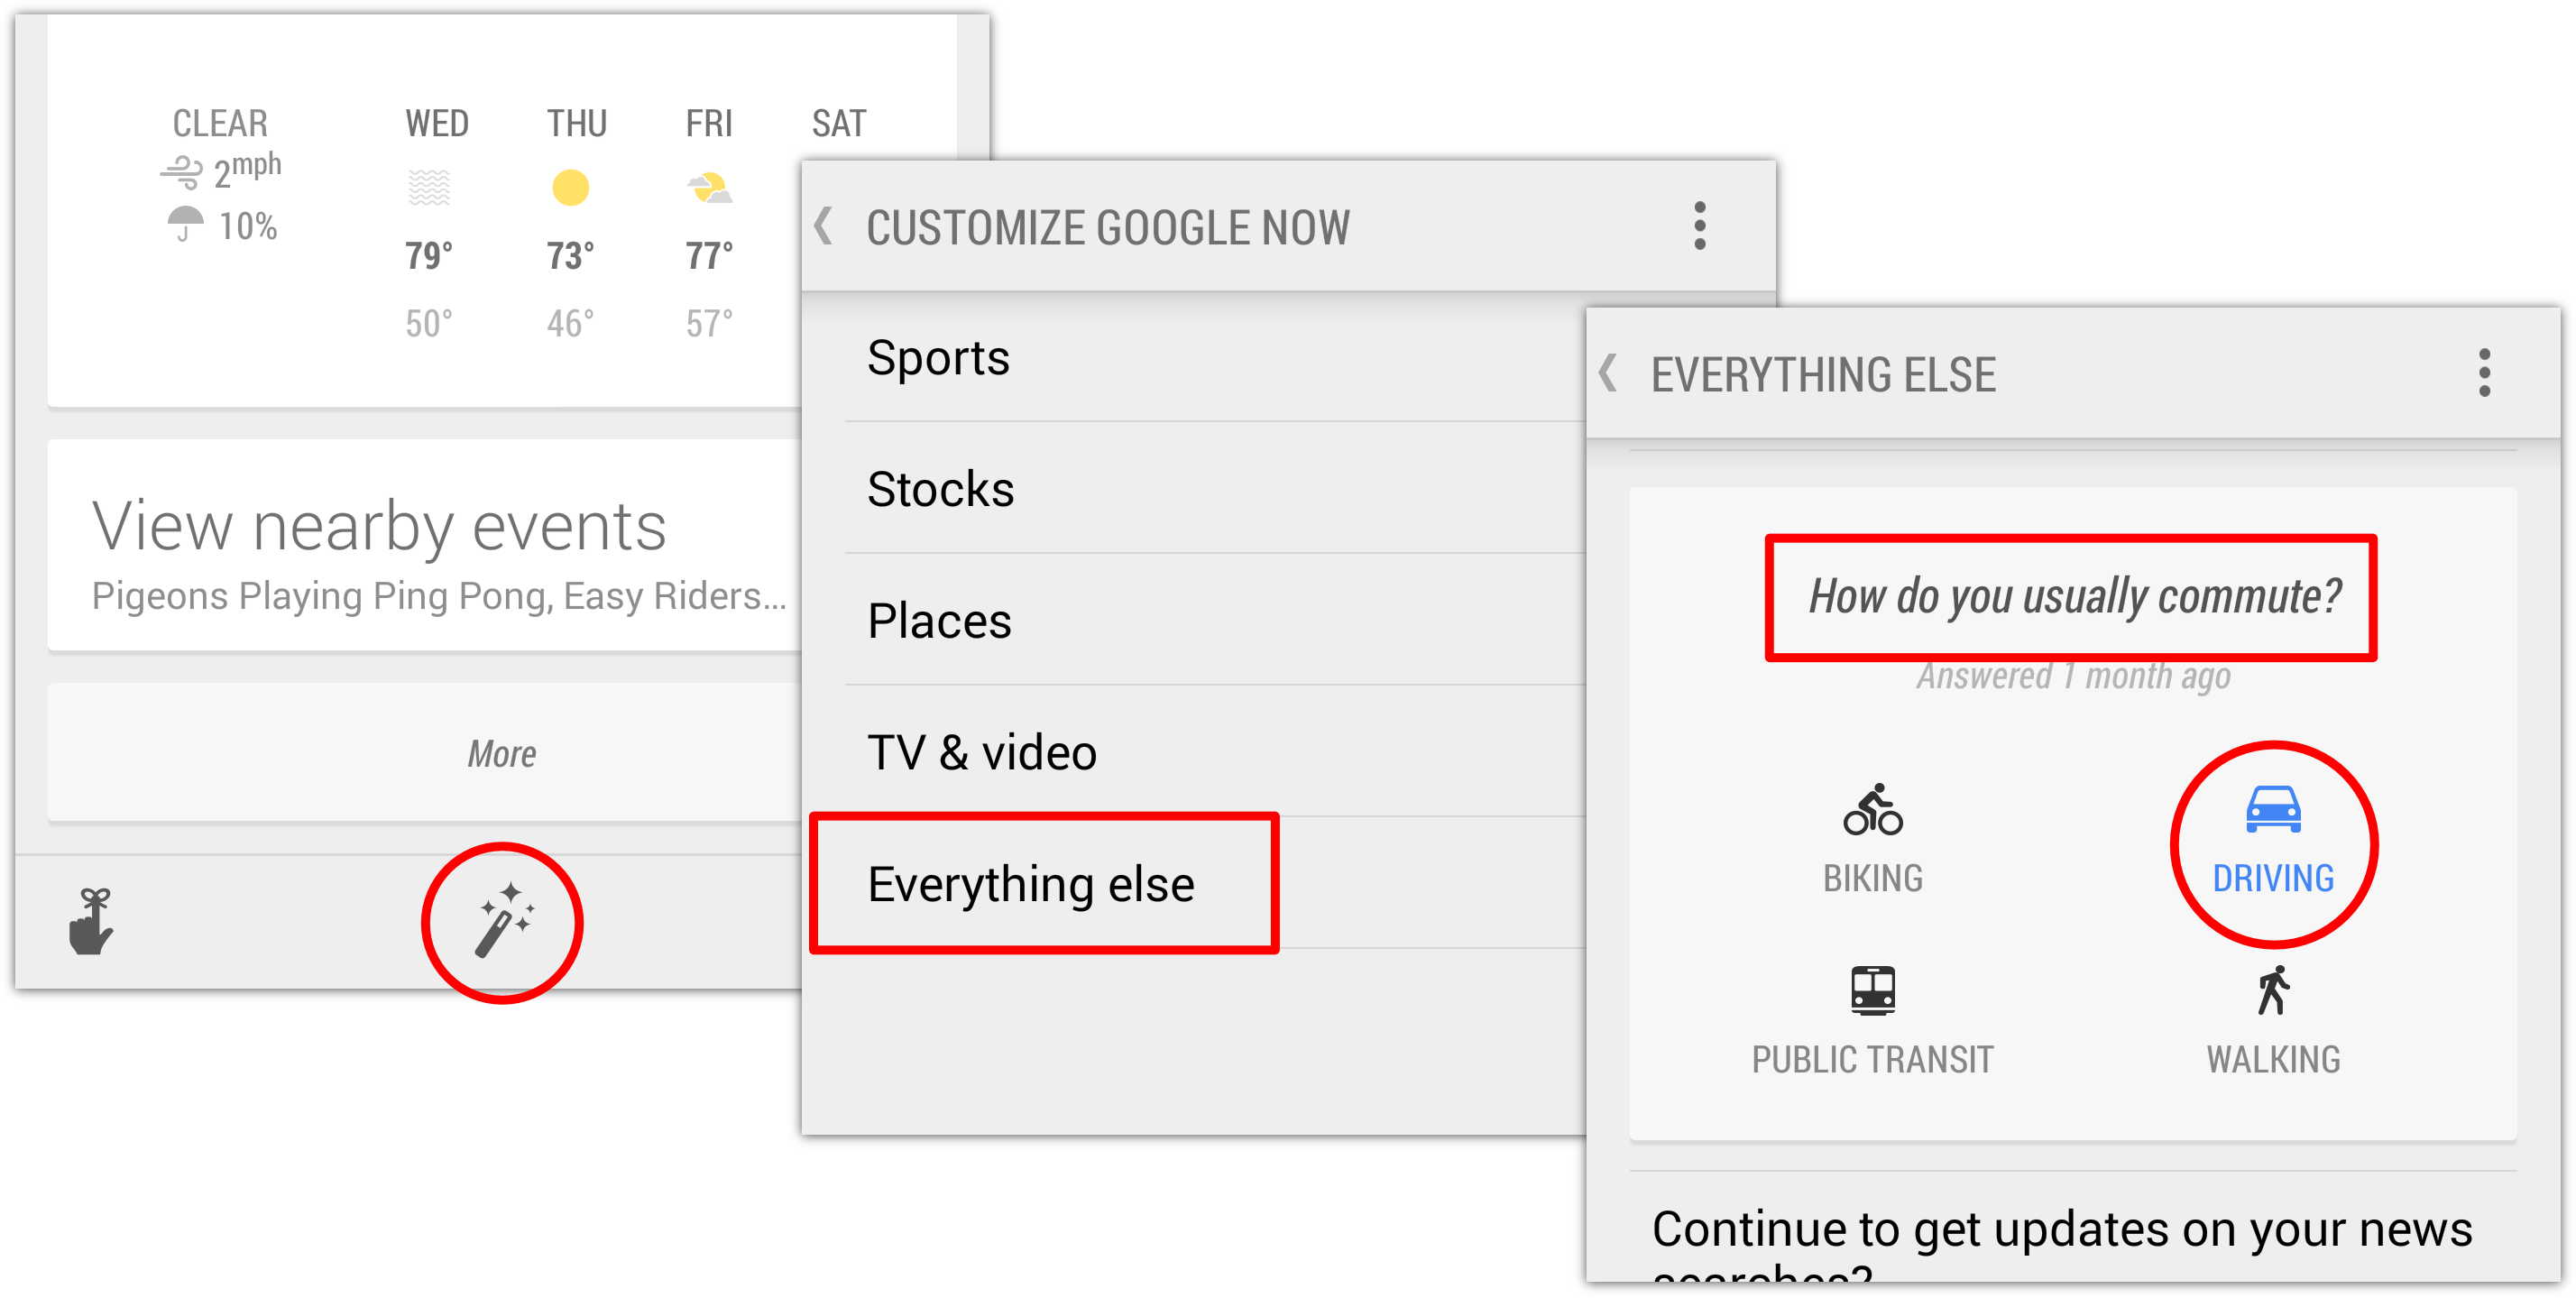 how to make sure you are logout from google